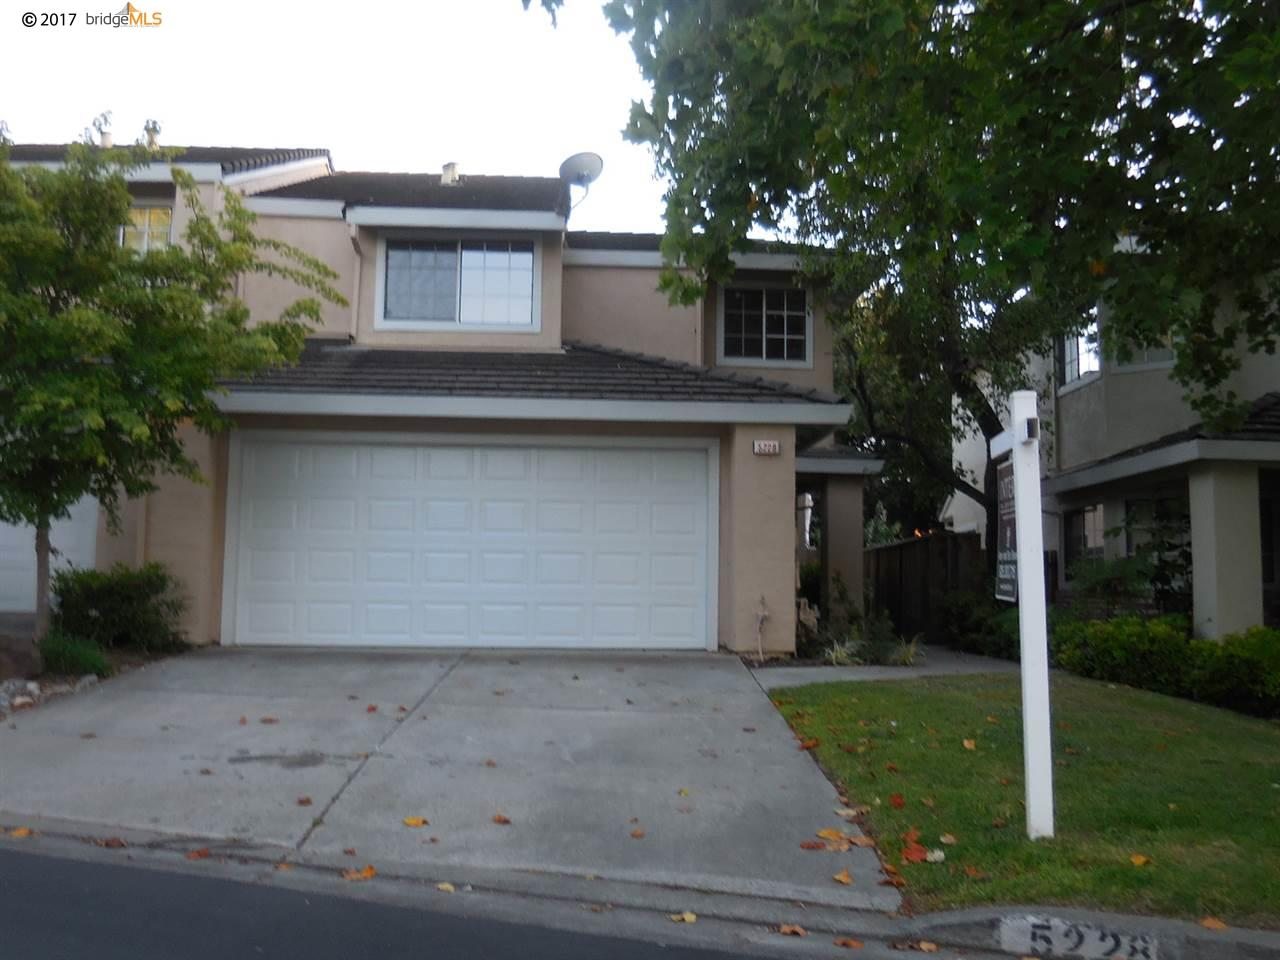 Townhouse for Sale at 5228 Pebble Glen Drive 5228 Pebble Glen Drive Concord, California 94521 United States